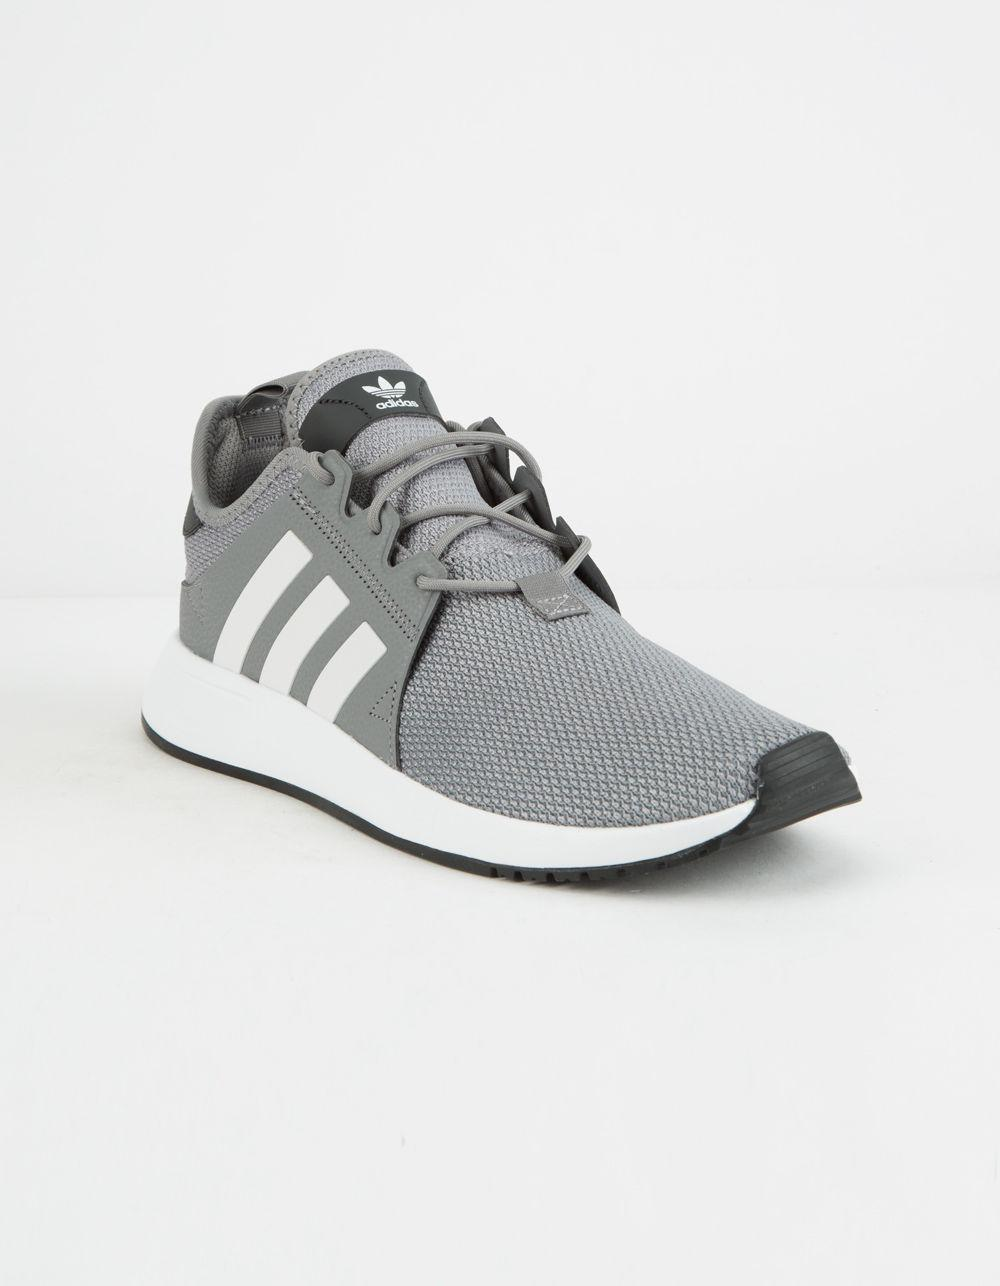 4ccaf712893 Lyst - adidas X plr Grey   White Shoes in Gray for Men